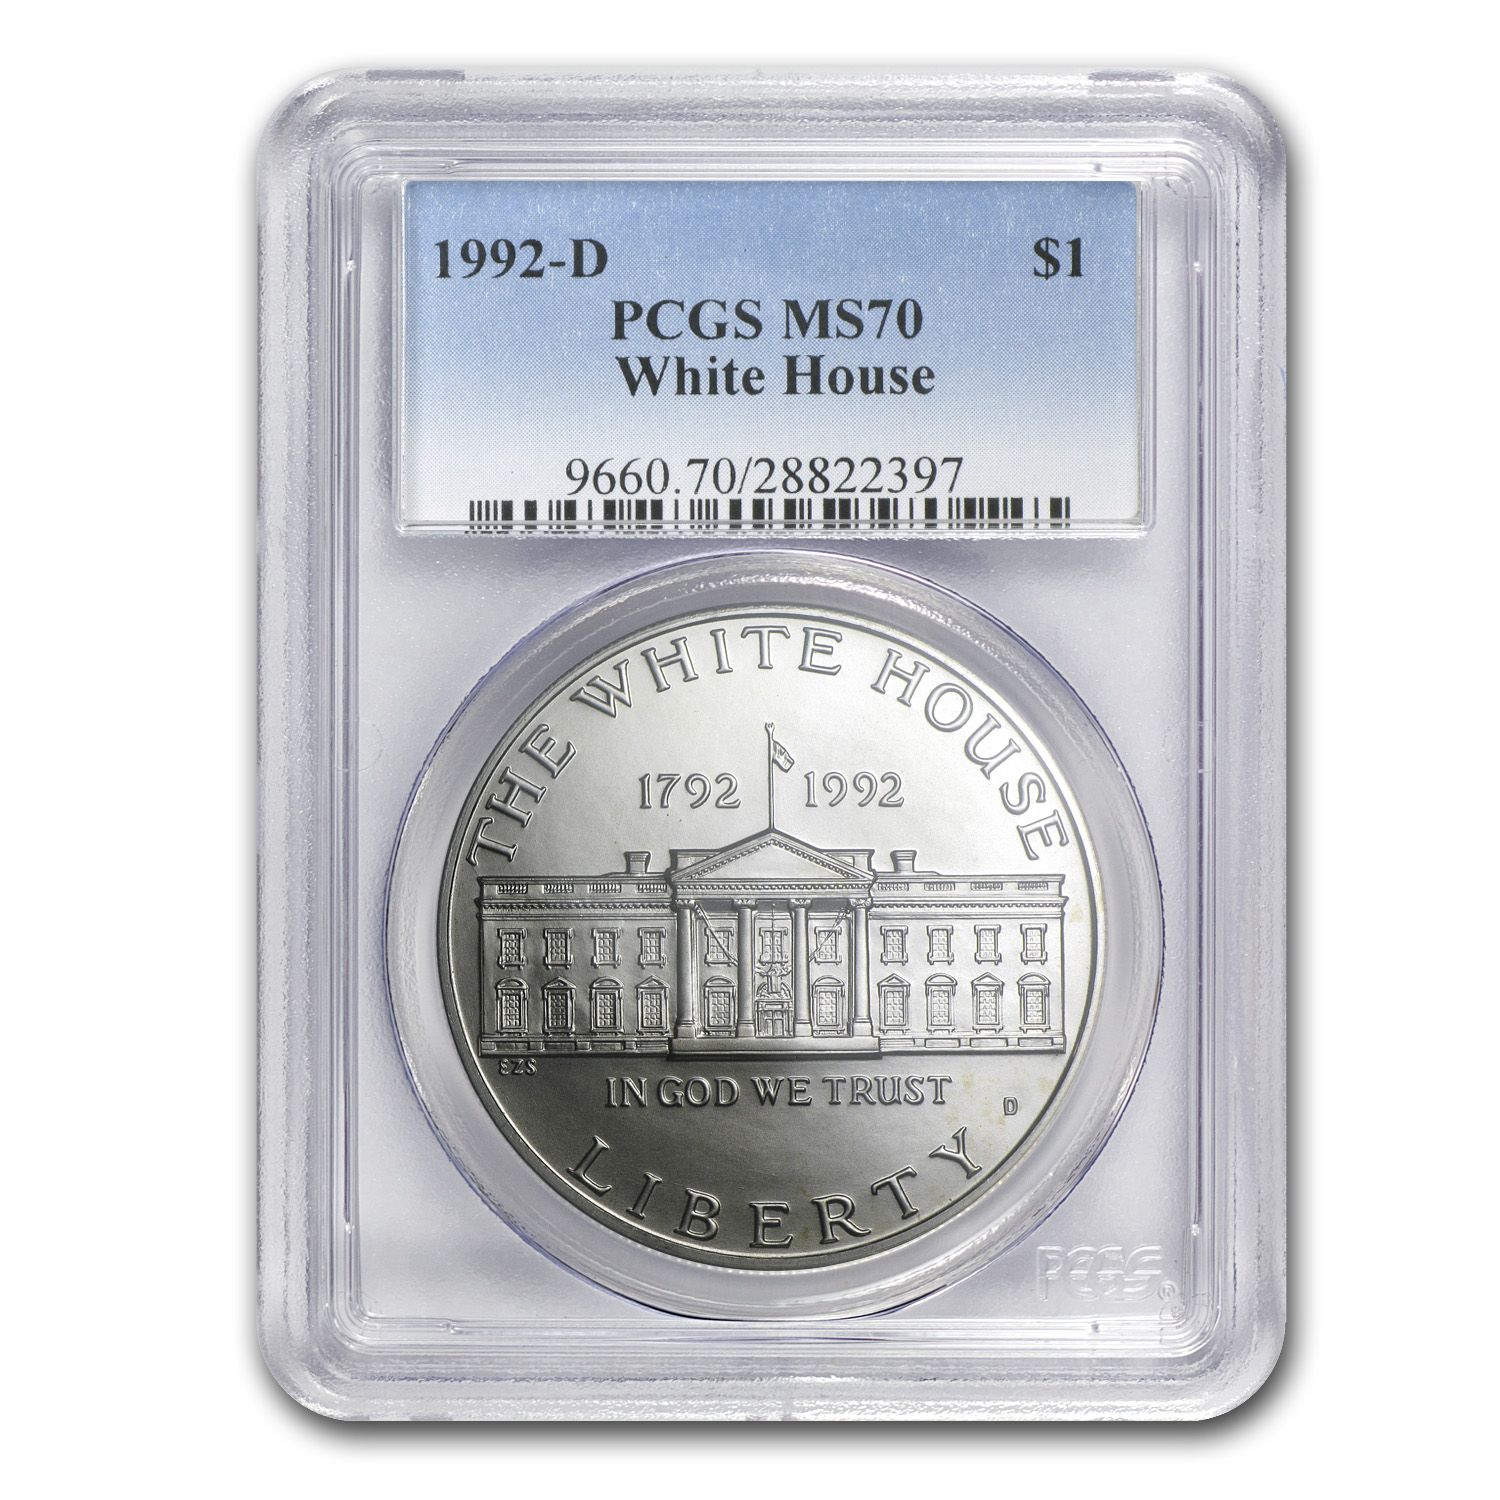 1992-D White House $1 Silver Commemorative MS-70 PCGS